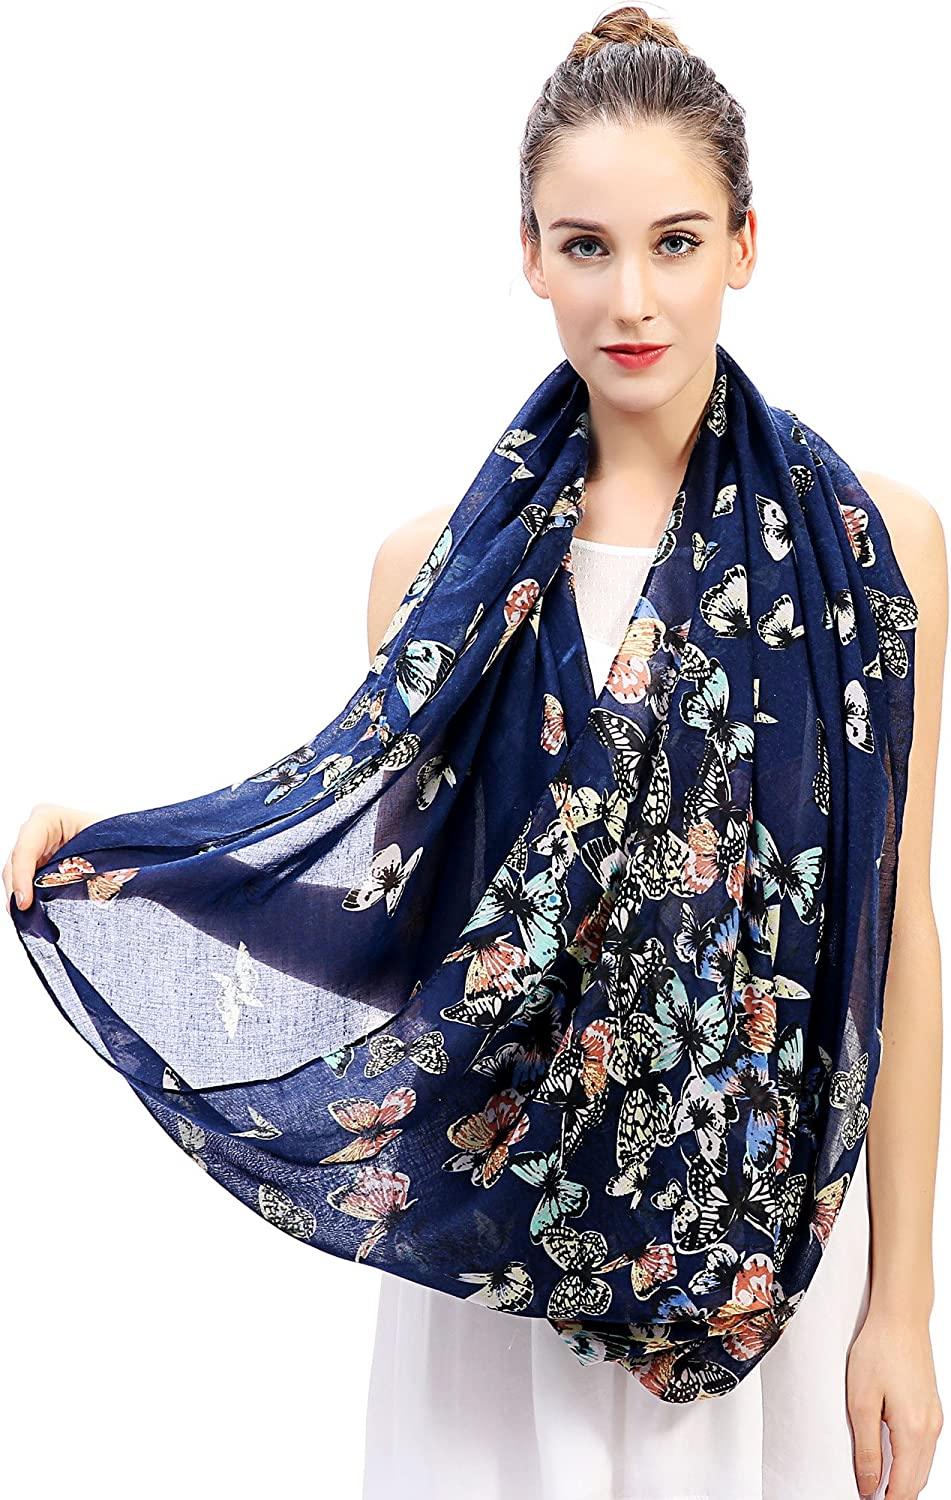 Lina /& Lily Butterfly Print Womens Infinity Scarf Lightweight Blue